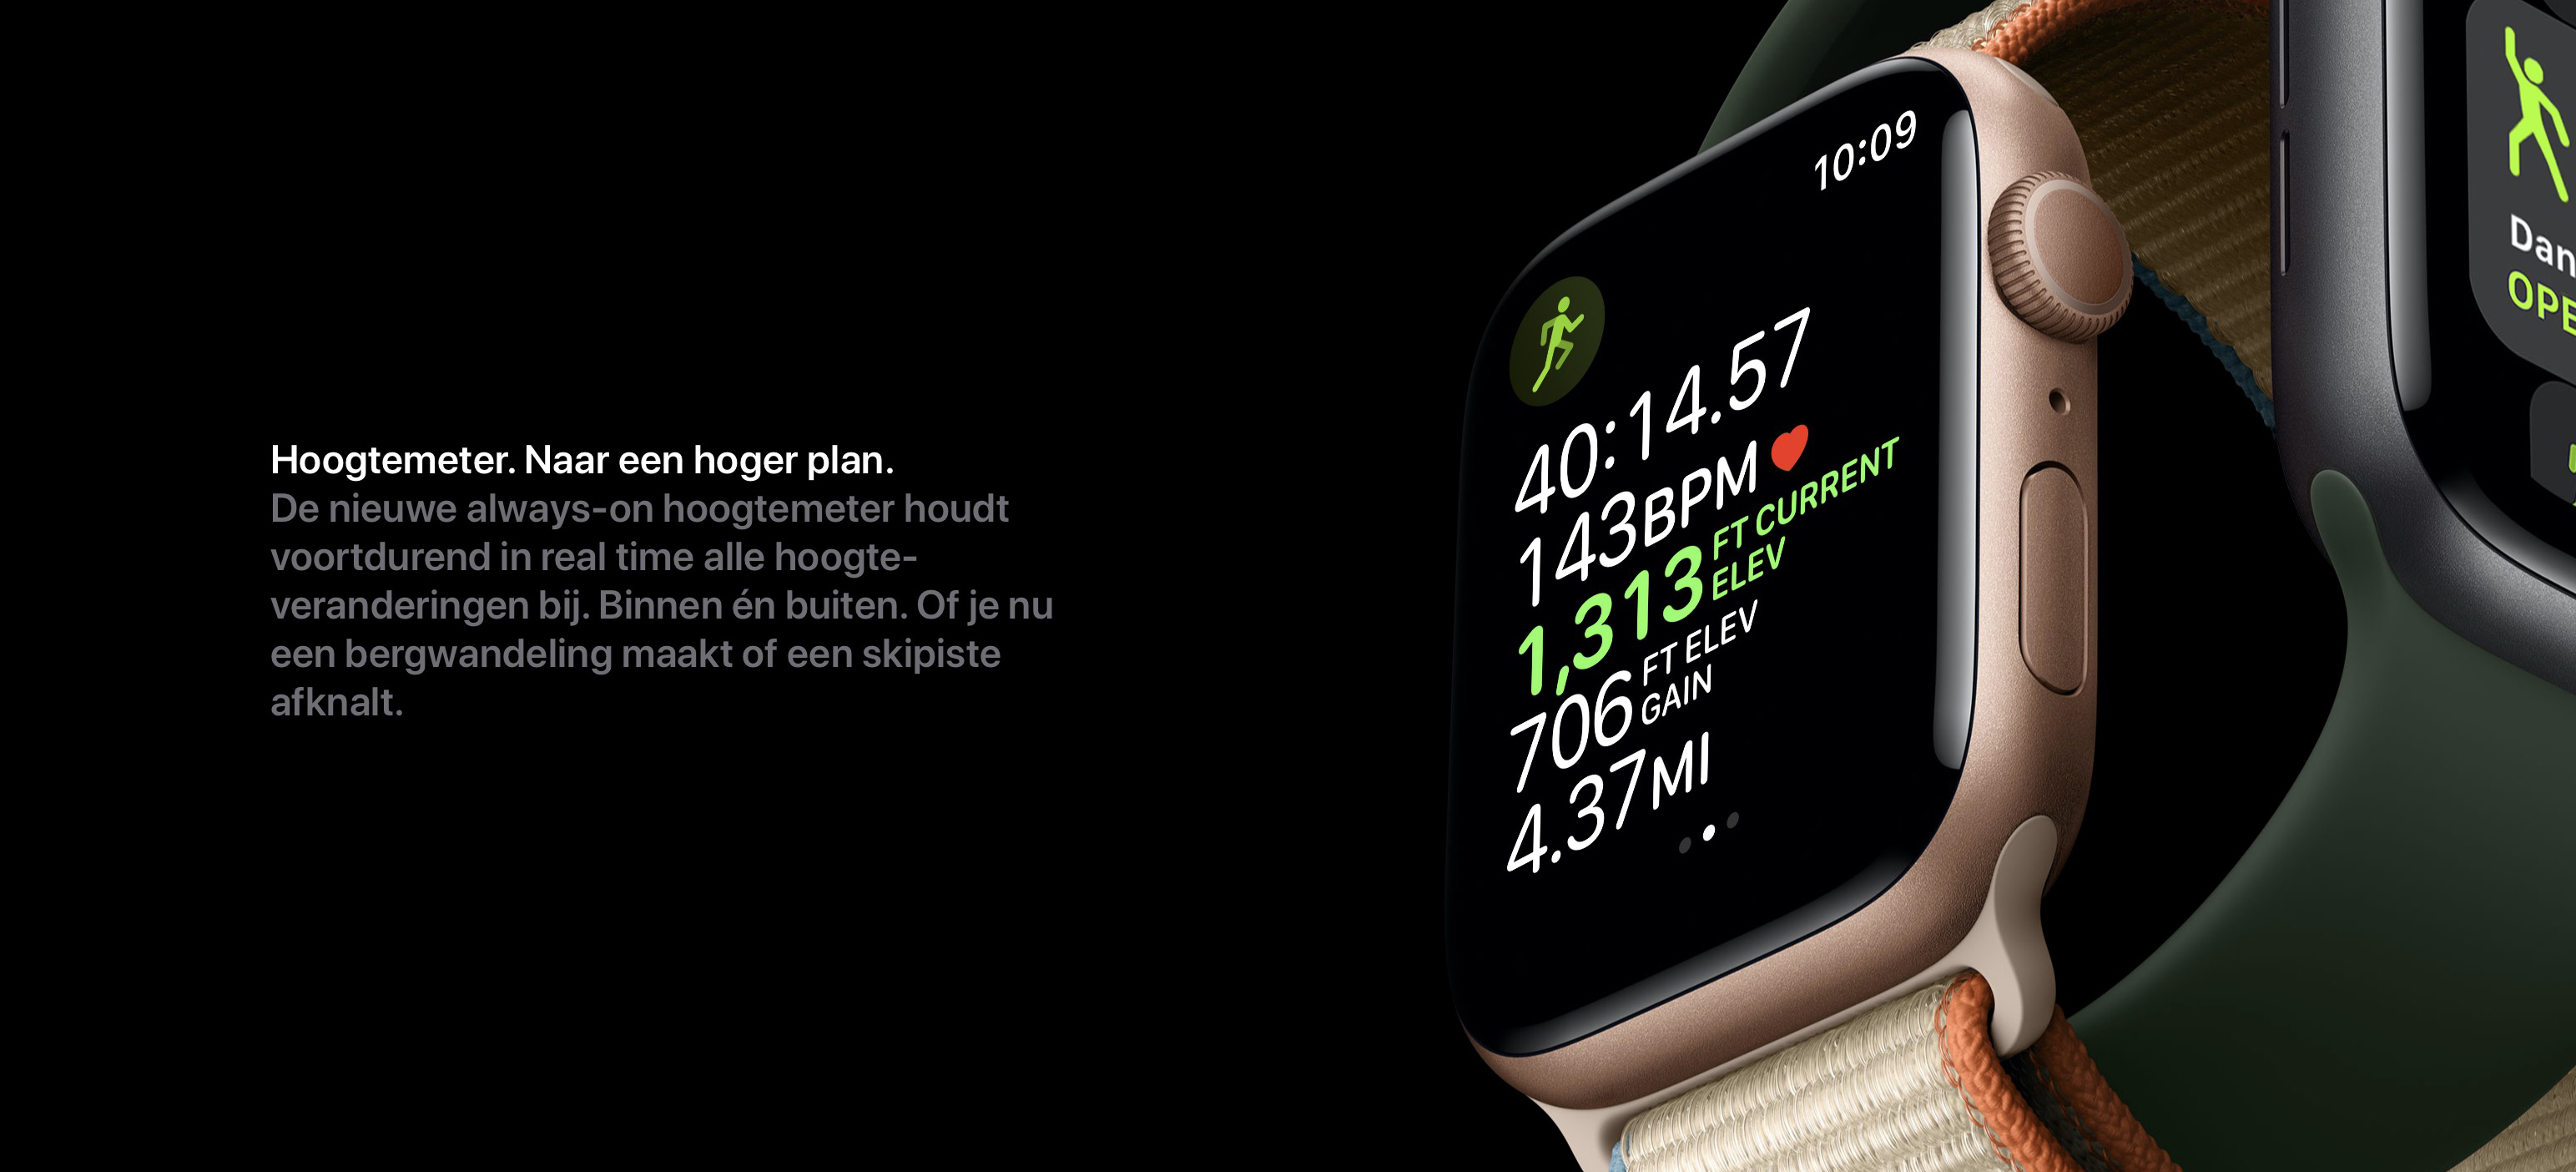 https://www.macfreak.nl/modules/news/images/zArt.AppleWatch6Hoogtemeter.jpg